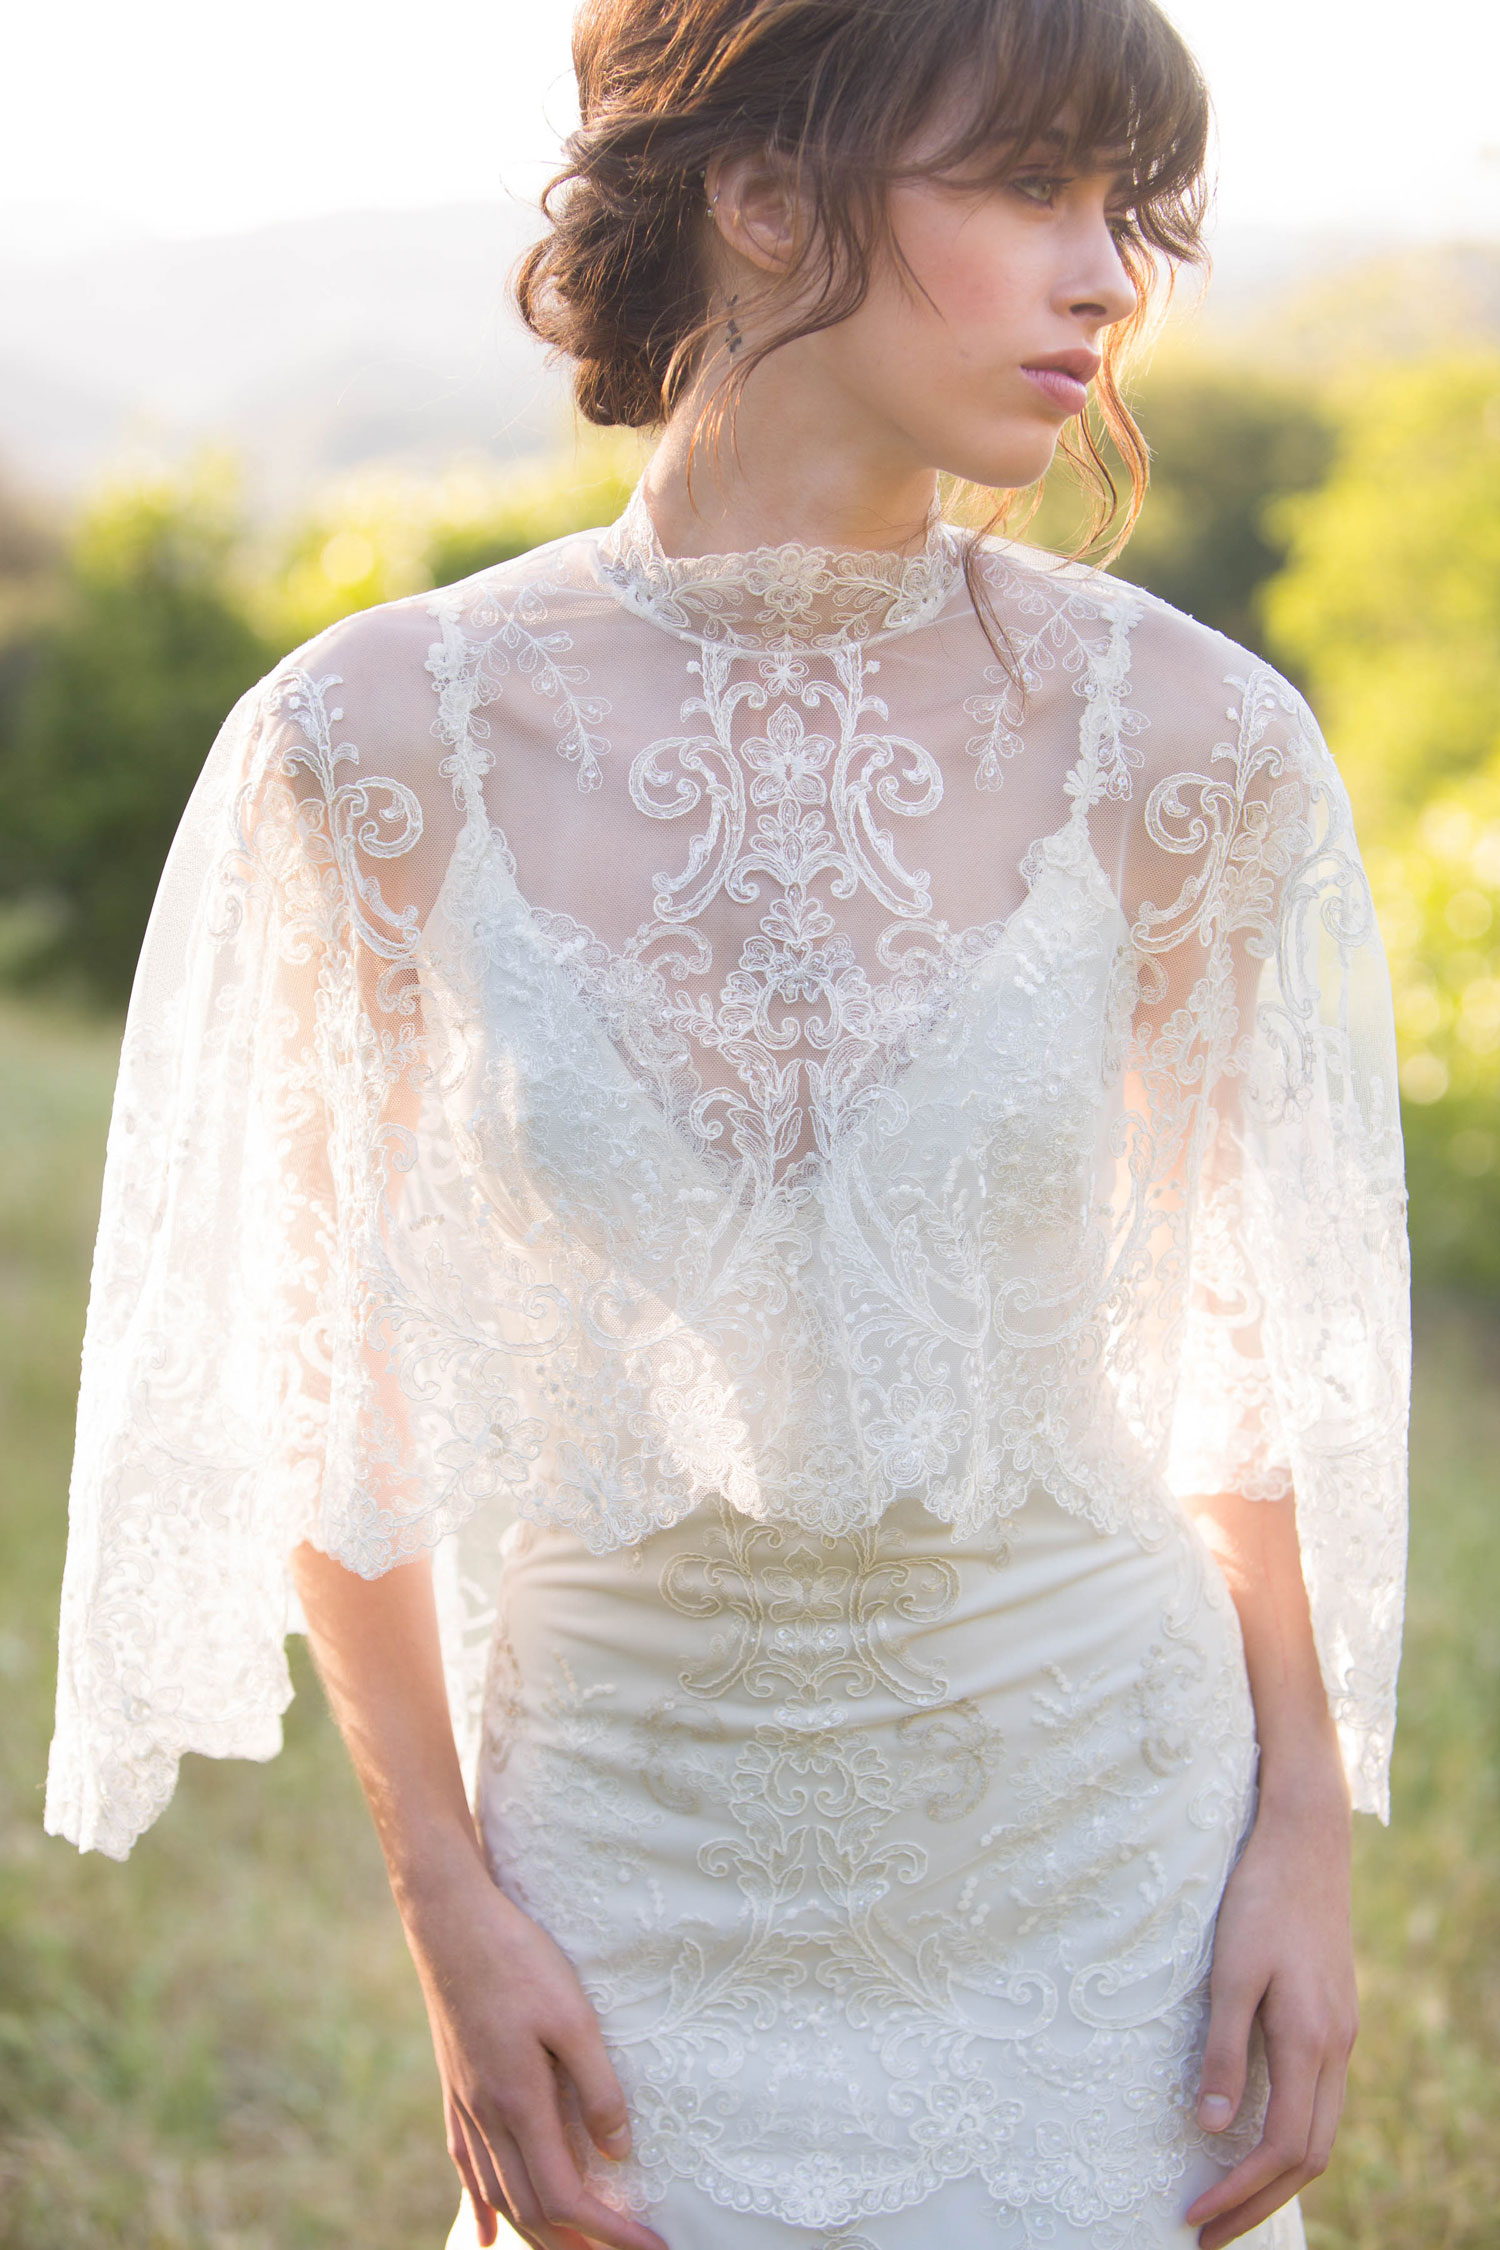 Claire Pettibone Romantique stylized shoot in Malibu California Dreamin' collection Santa Monica wedding dress close up